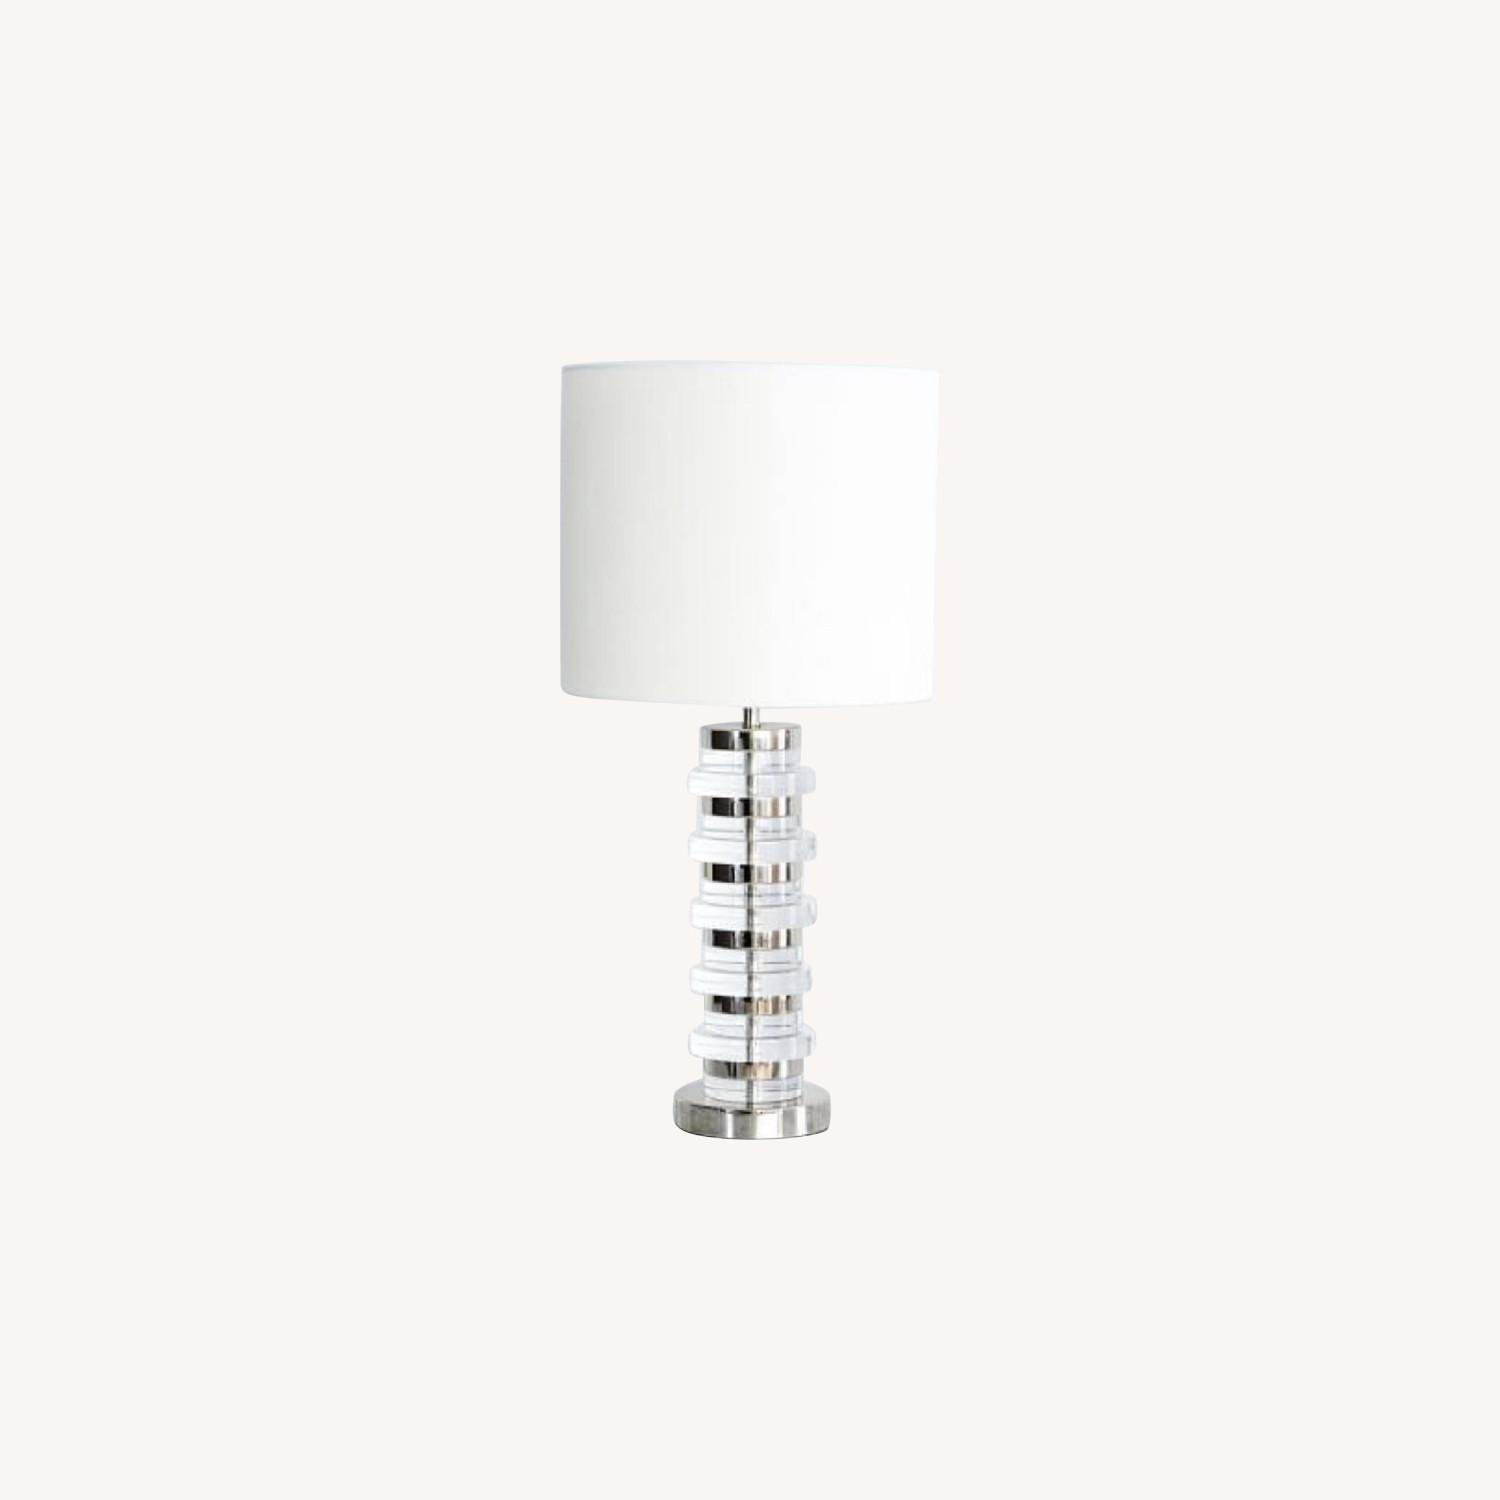 West Elm Clear Disk Table Lamp in Polish Nickel w/ USB - image-0